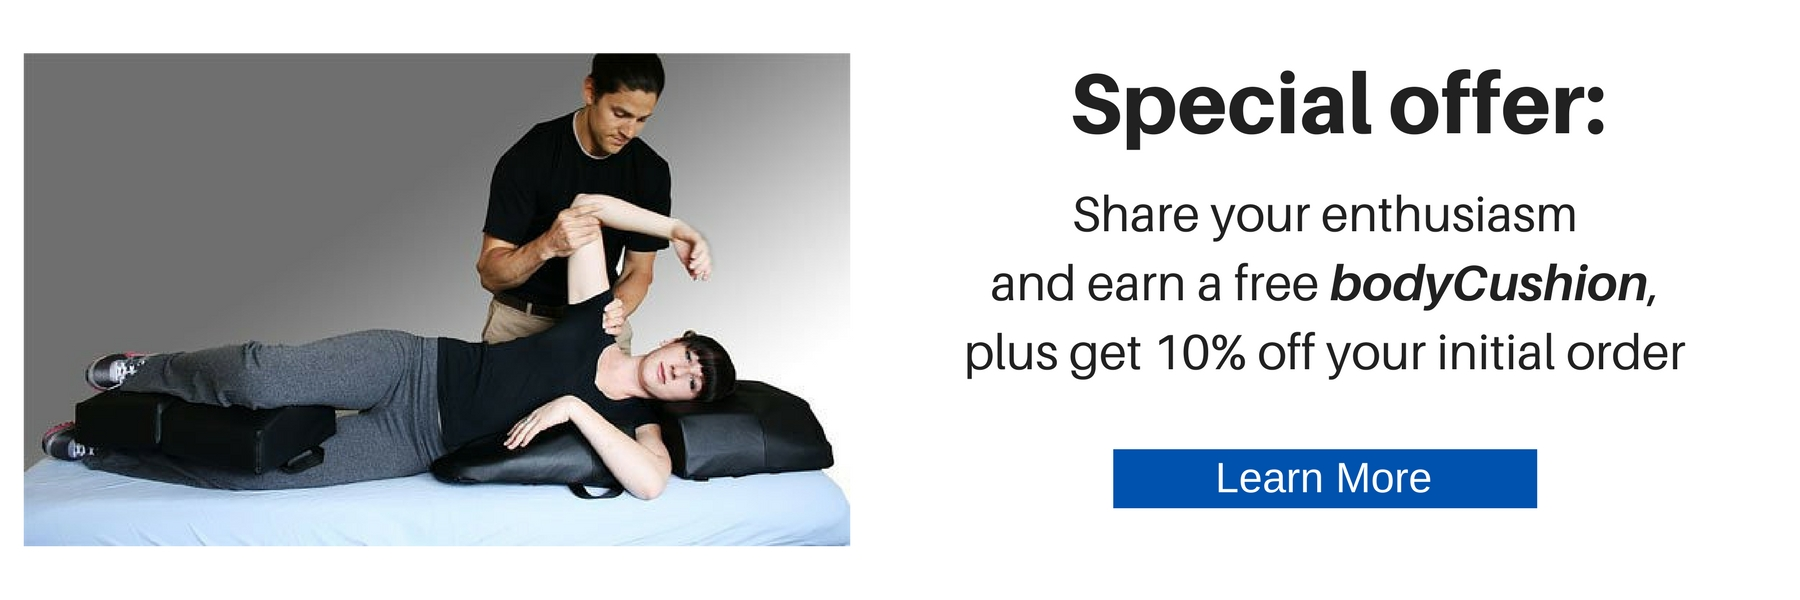 Special offer: Share your enthusiasm and earn a free bodyCushion, plus get 10% off your initial order. Learn More